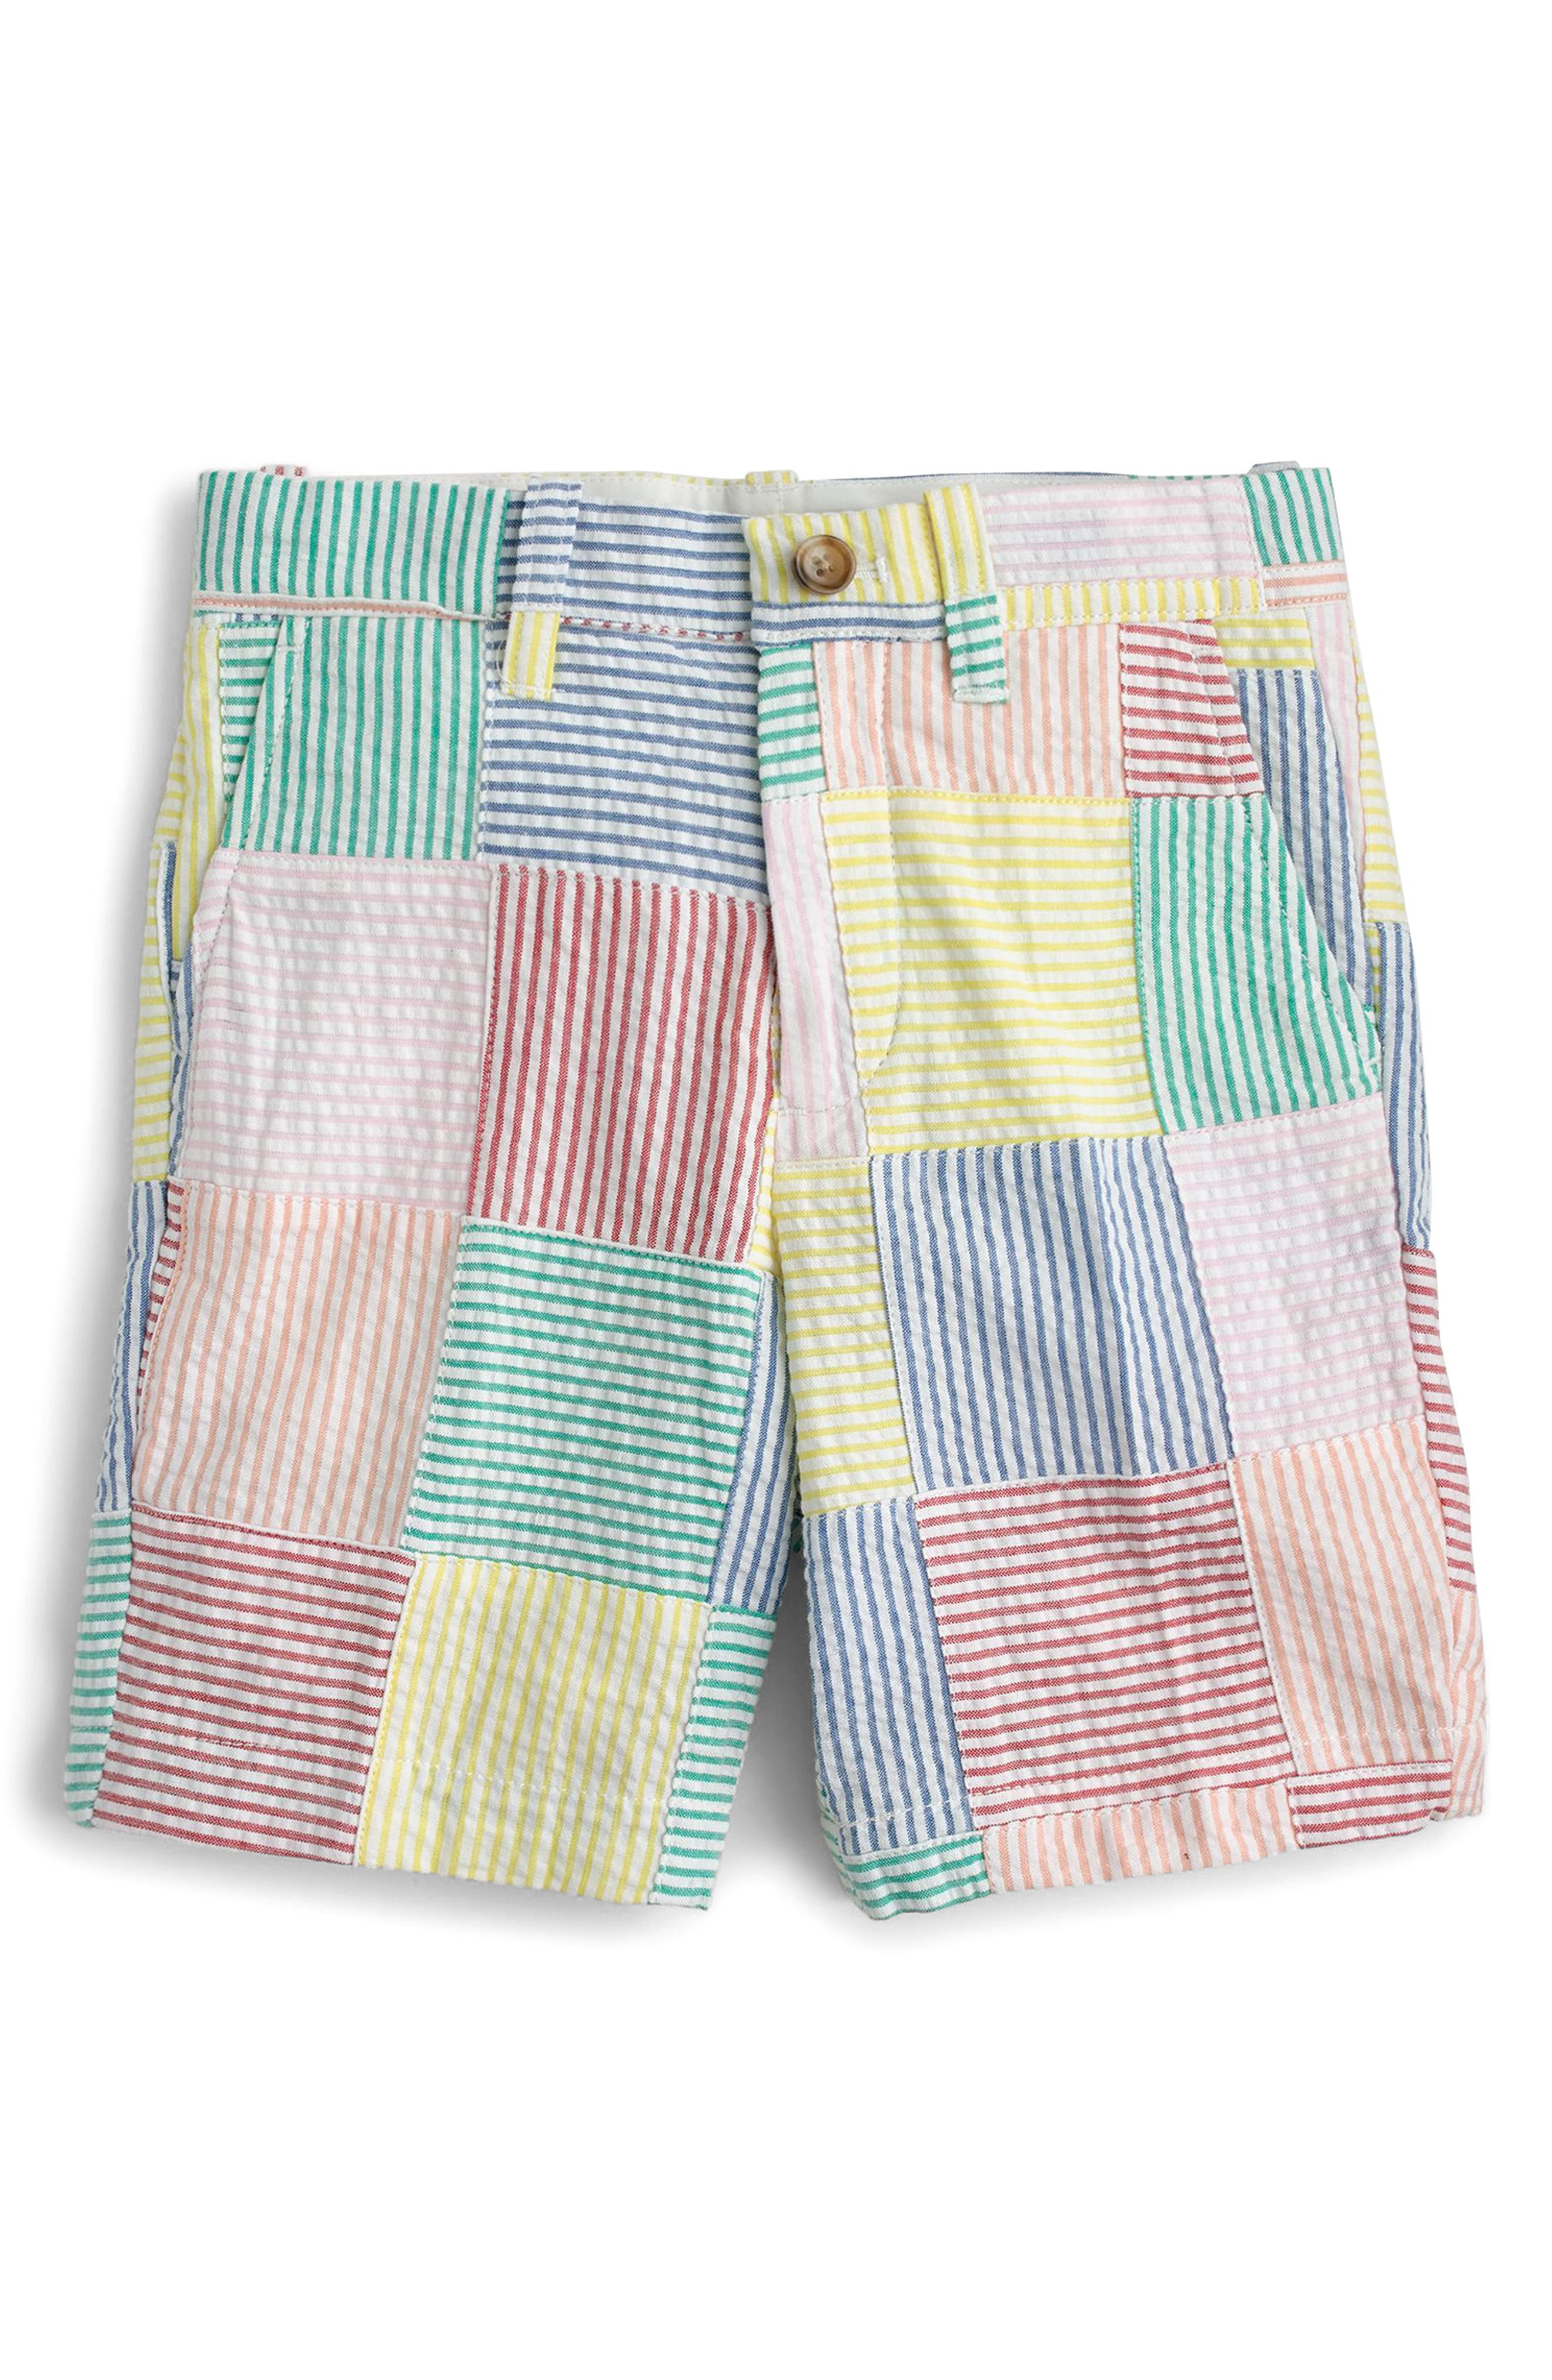 Crewcuts Stanton Patchwork Shorts,                         Main,                         color, Ivory Multi